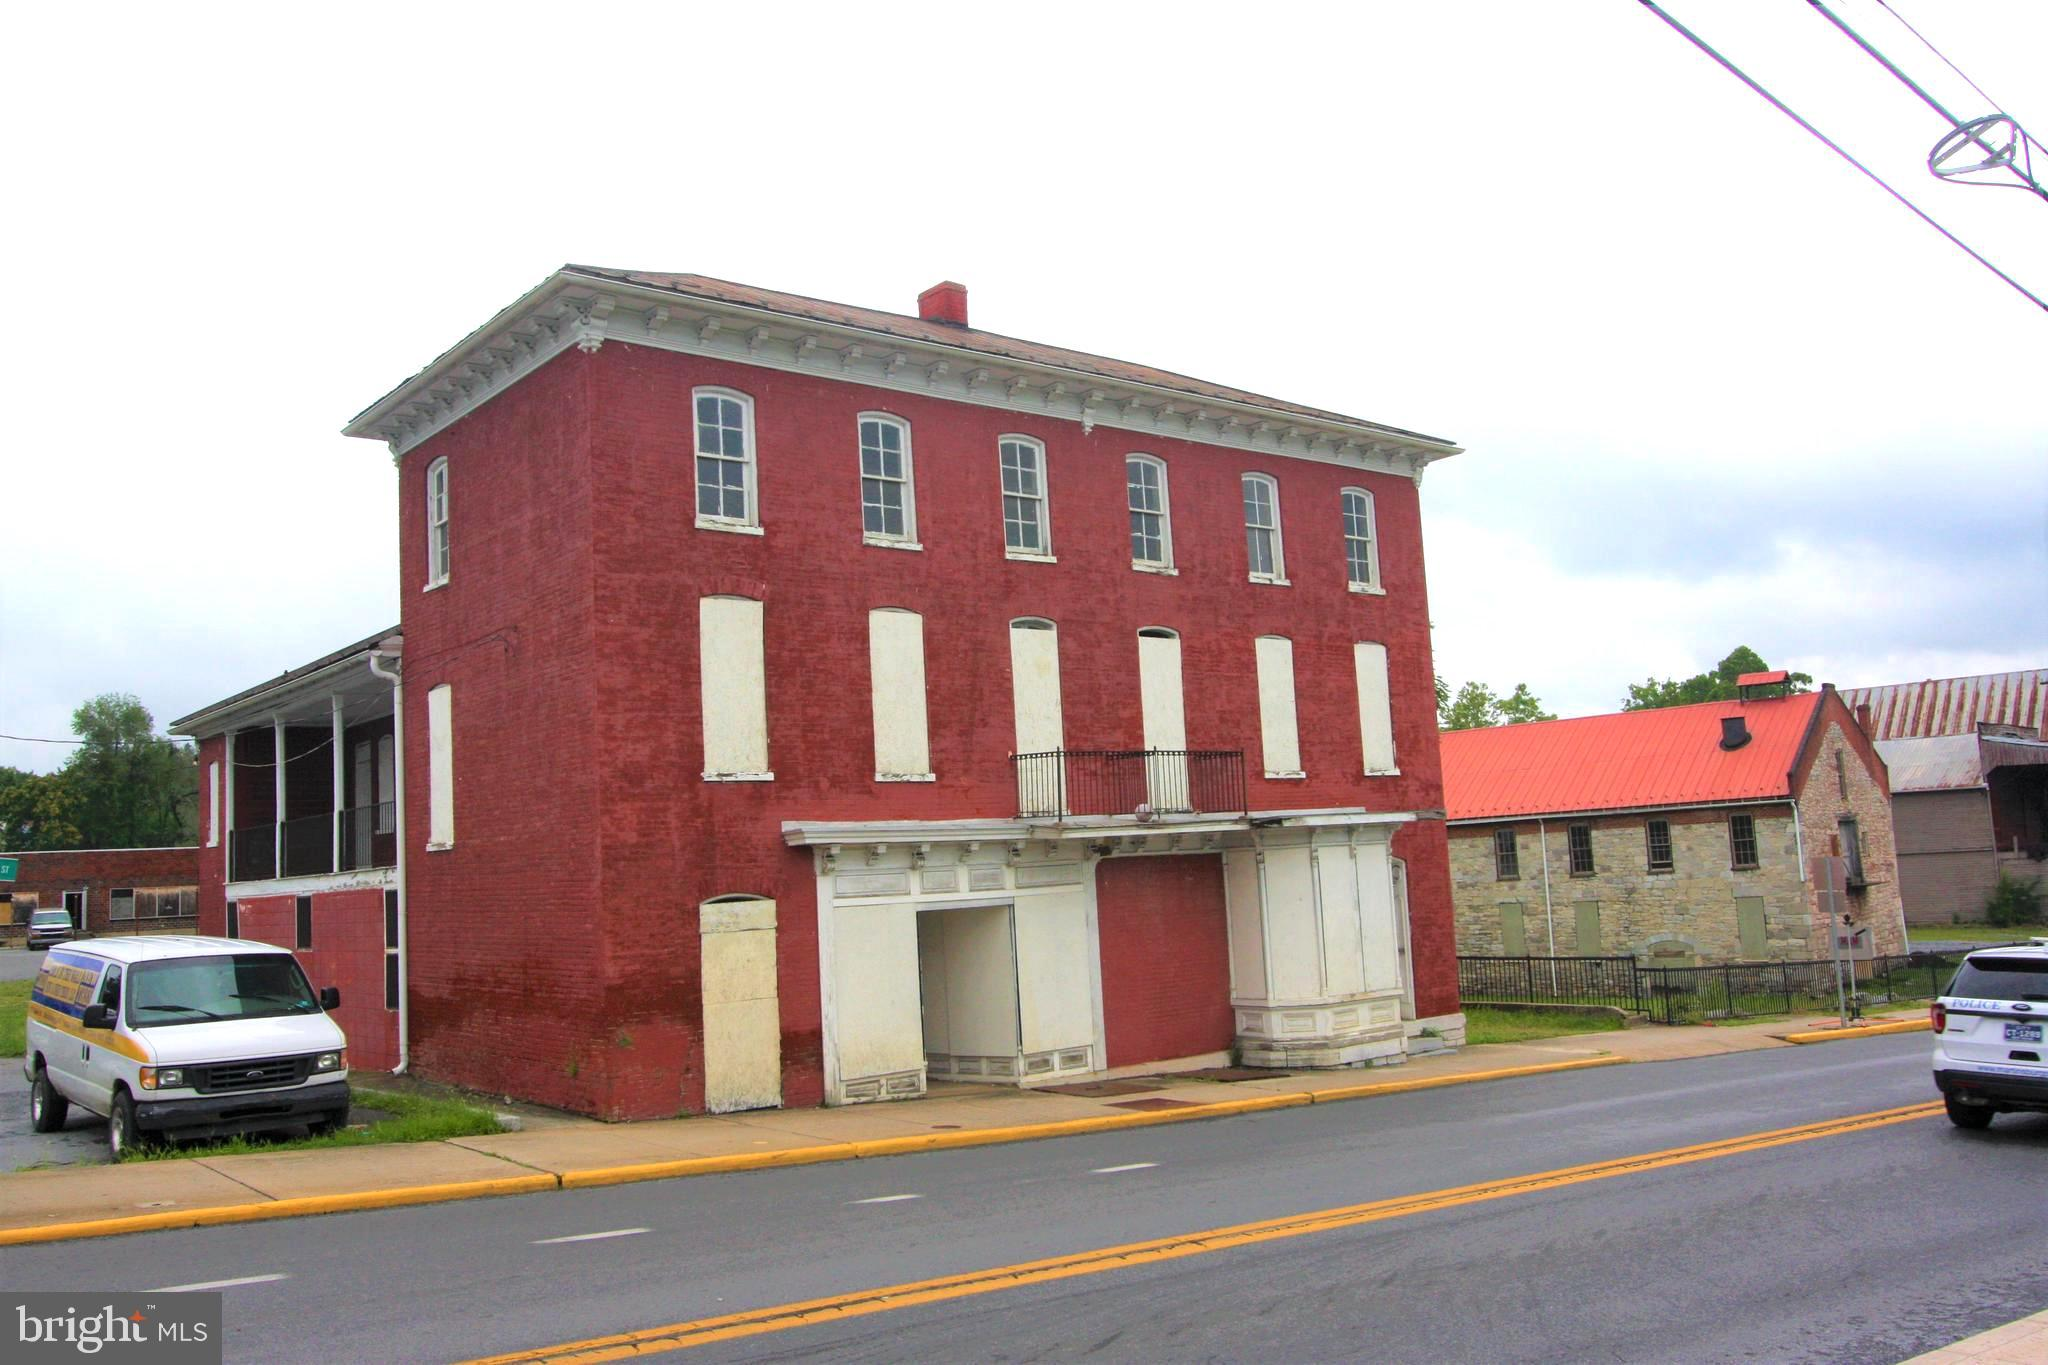 Available now for the first time on the open market in many years is this grand historic property with exceptional curb appeal in the heart of historic downtown Martinsburg.  Vacant for many years, this property eagerly awaits a new owner's vision for restoration.  Located in a historic district and a federal Qualified Opportunity Zone, this property may provide the new owner with significant tax benefits, as well as joy of ownership.  Historically used as commercial on the ground floor and residential above.  Close to MARC train with view of historic locomotive train round house.